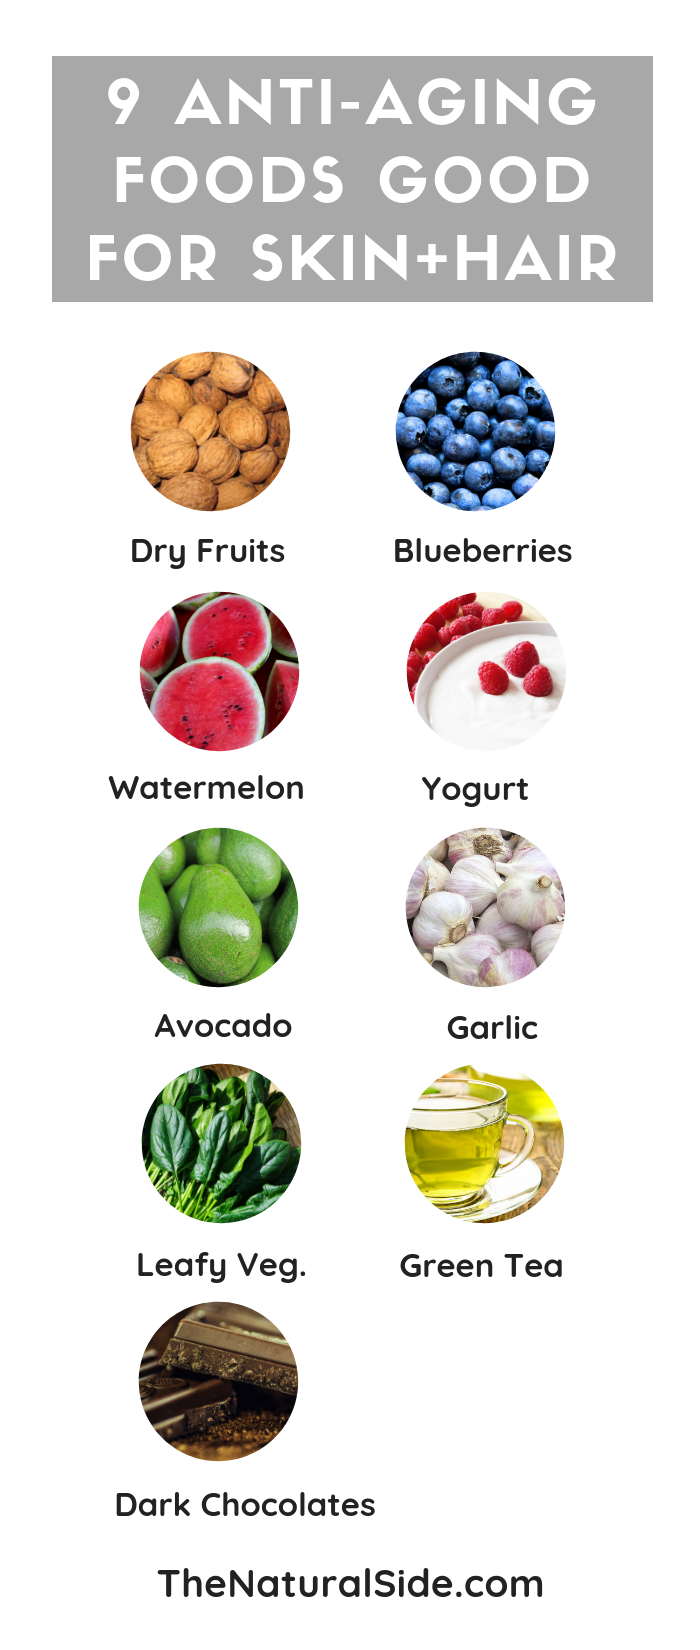 9 Anti Aging Foods Good For Skin And Hair Healthy Skin Foods Food For Healthy Skin Food For Foods For Healthy Skin Best Foods For Skin Foods For Clear Skin